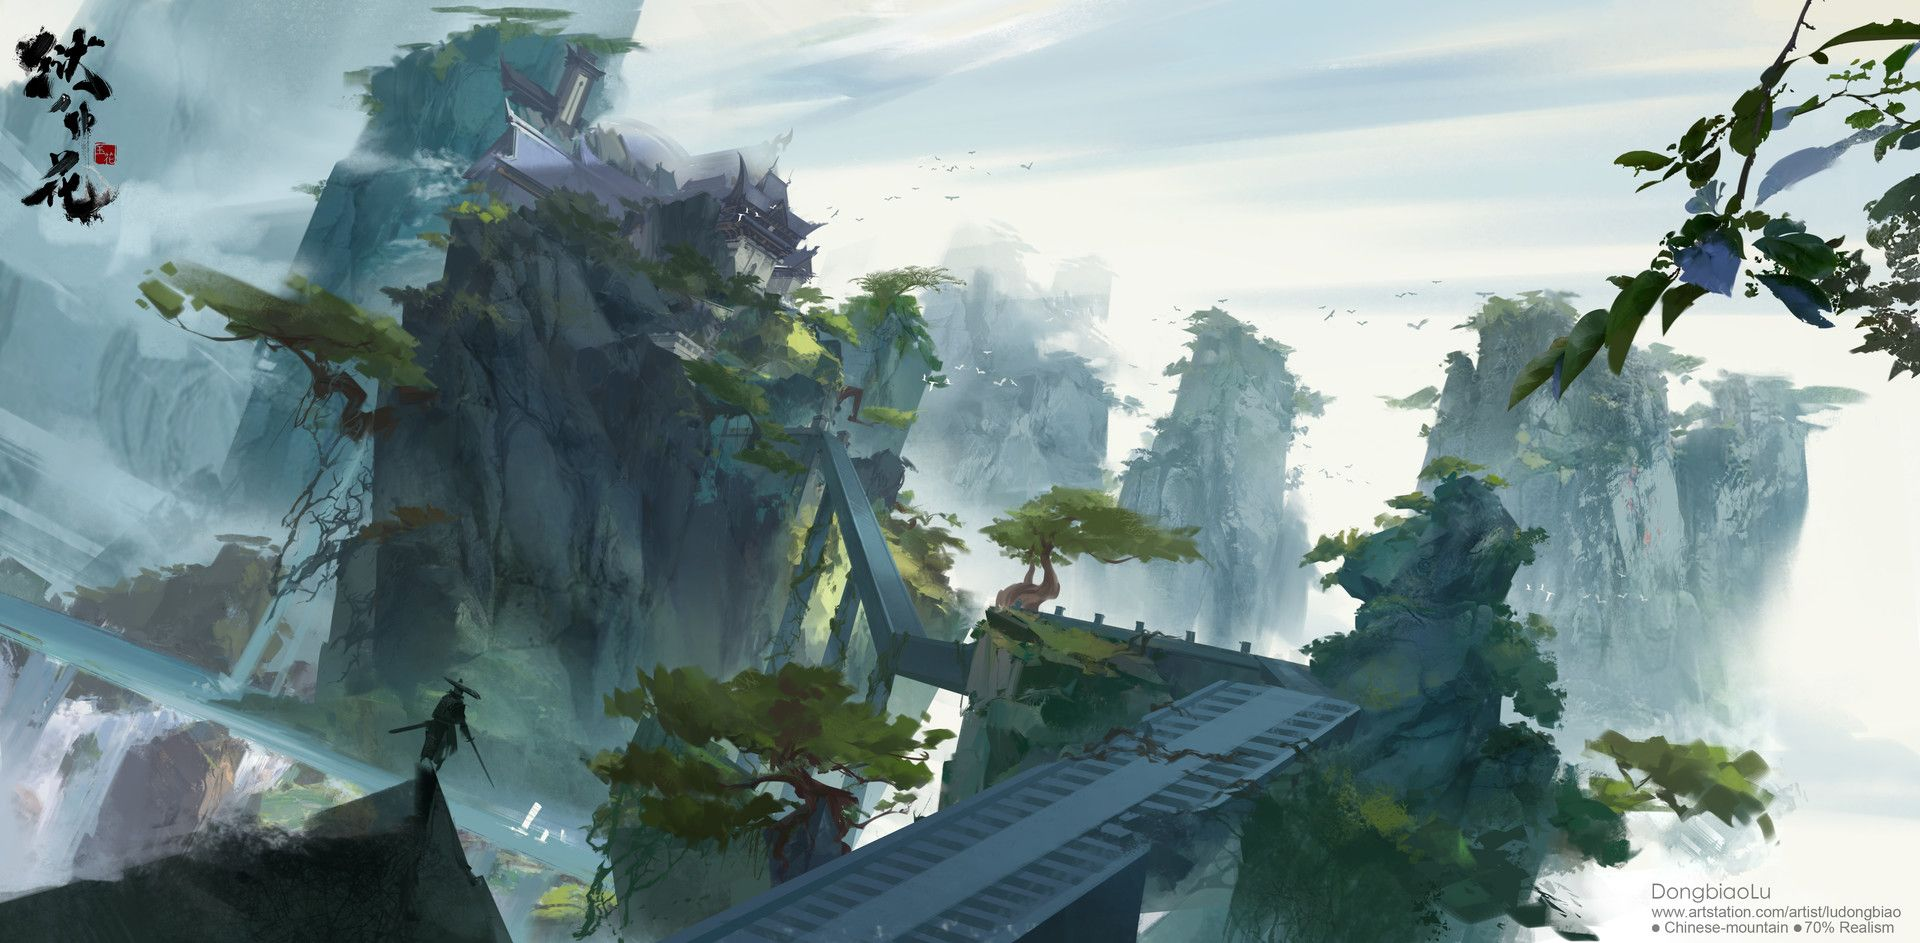 Artstation Chinese Mountains Dongbiao Lu 70 Realistic Dongbiao Lu Fantasy Art Landscapes Fantasy Landscape Environment Concept Art